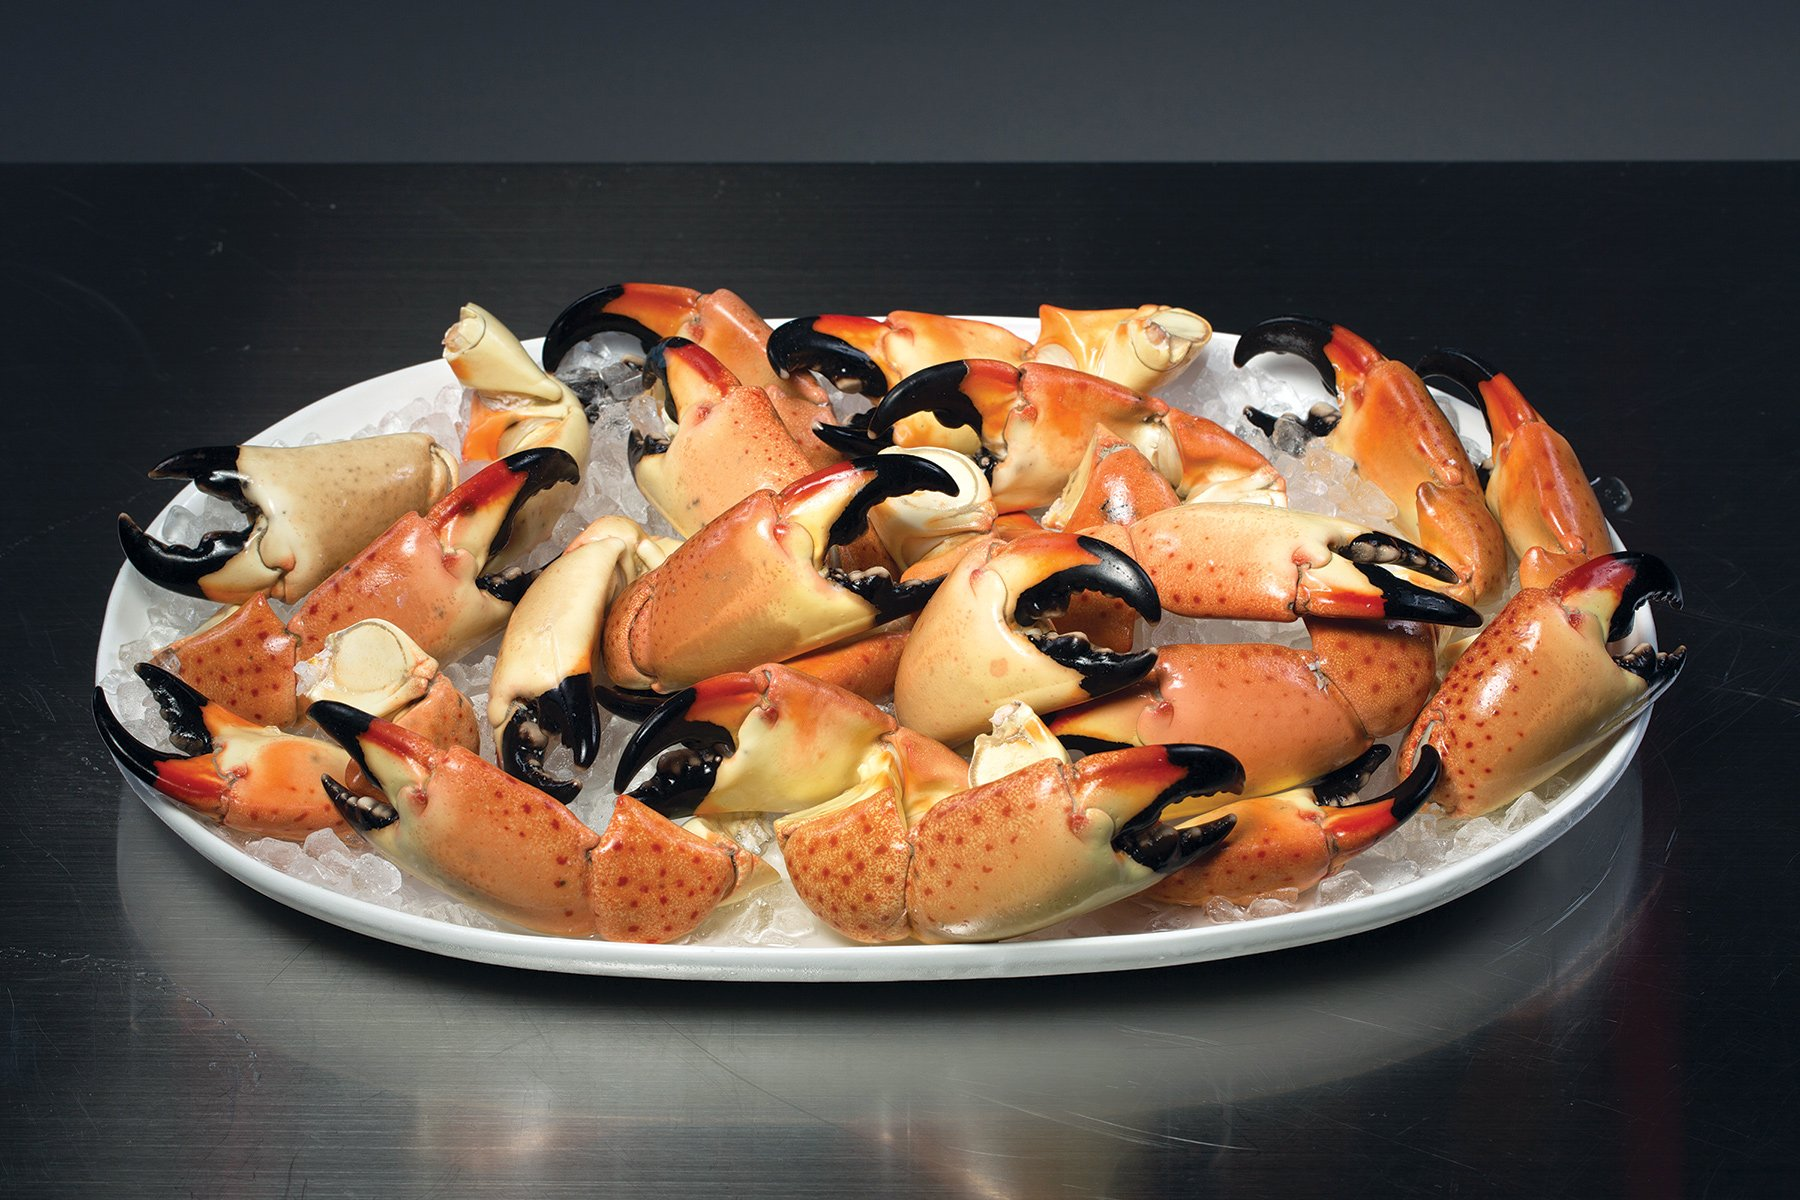 Florida Stone Crab claws on ice